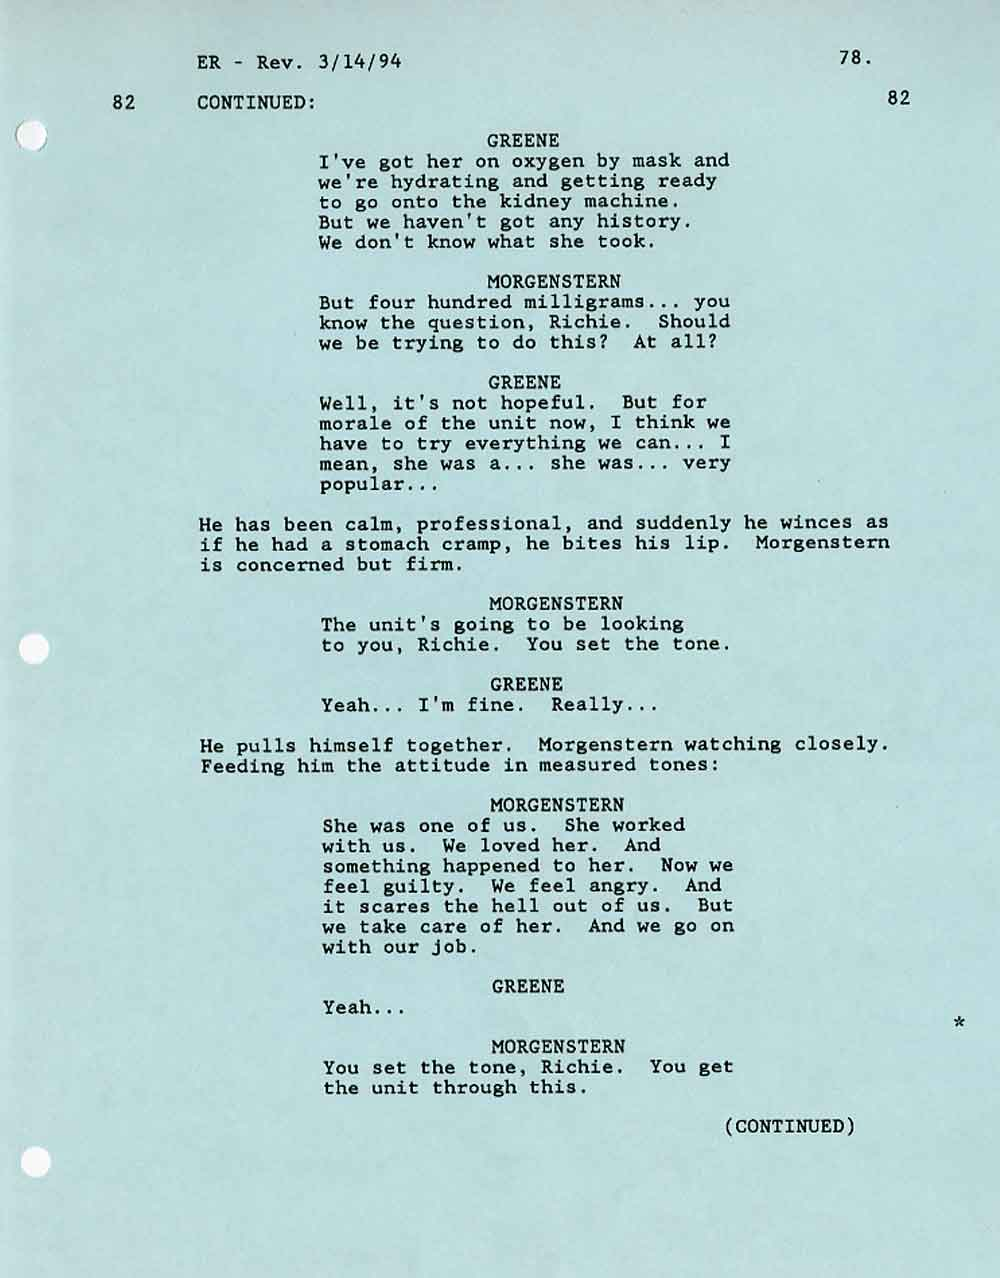 ER Pilot Script written by Michael Crichton